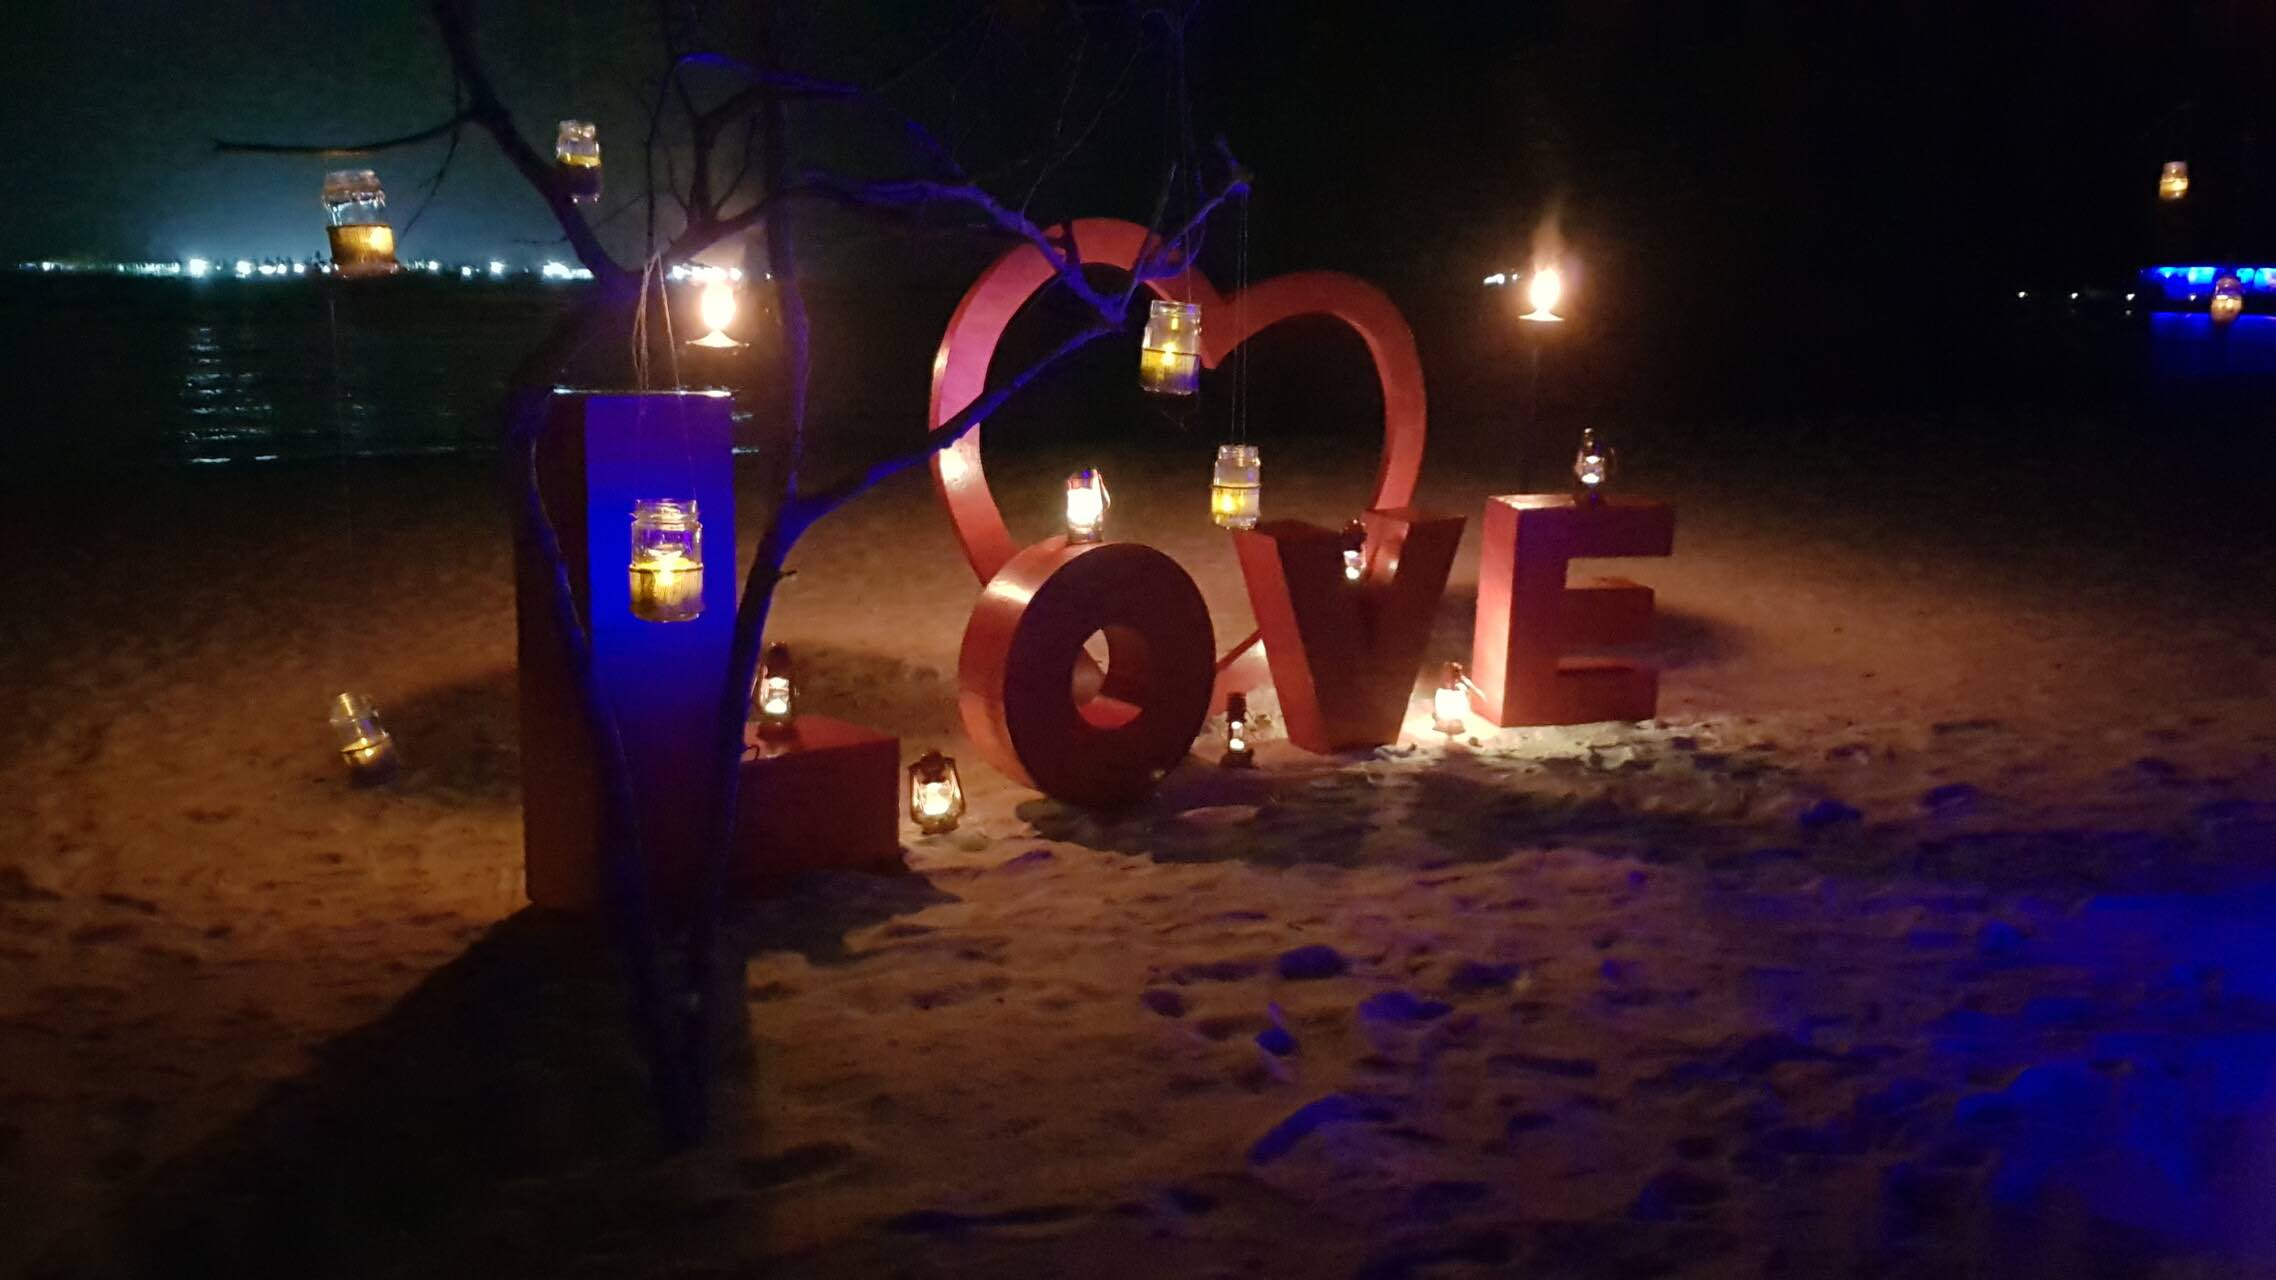 maldives-oblu-by-atmosphere-at-helengeli-love-holiday-review-feedback-invite-to-paradise-quentin-kate-hulm.jpg